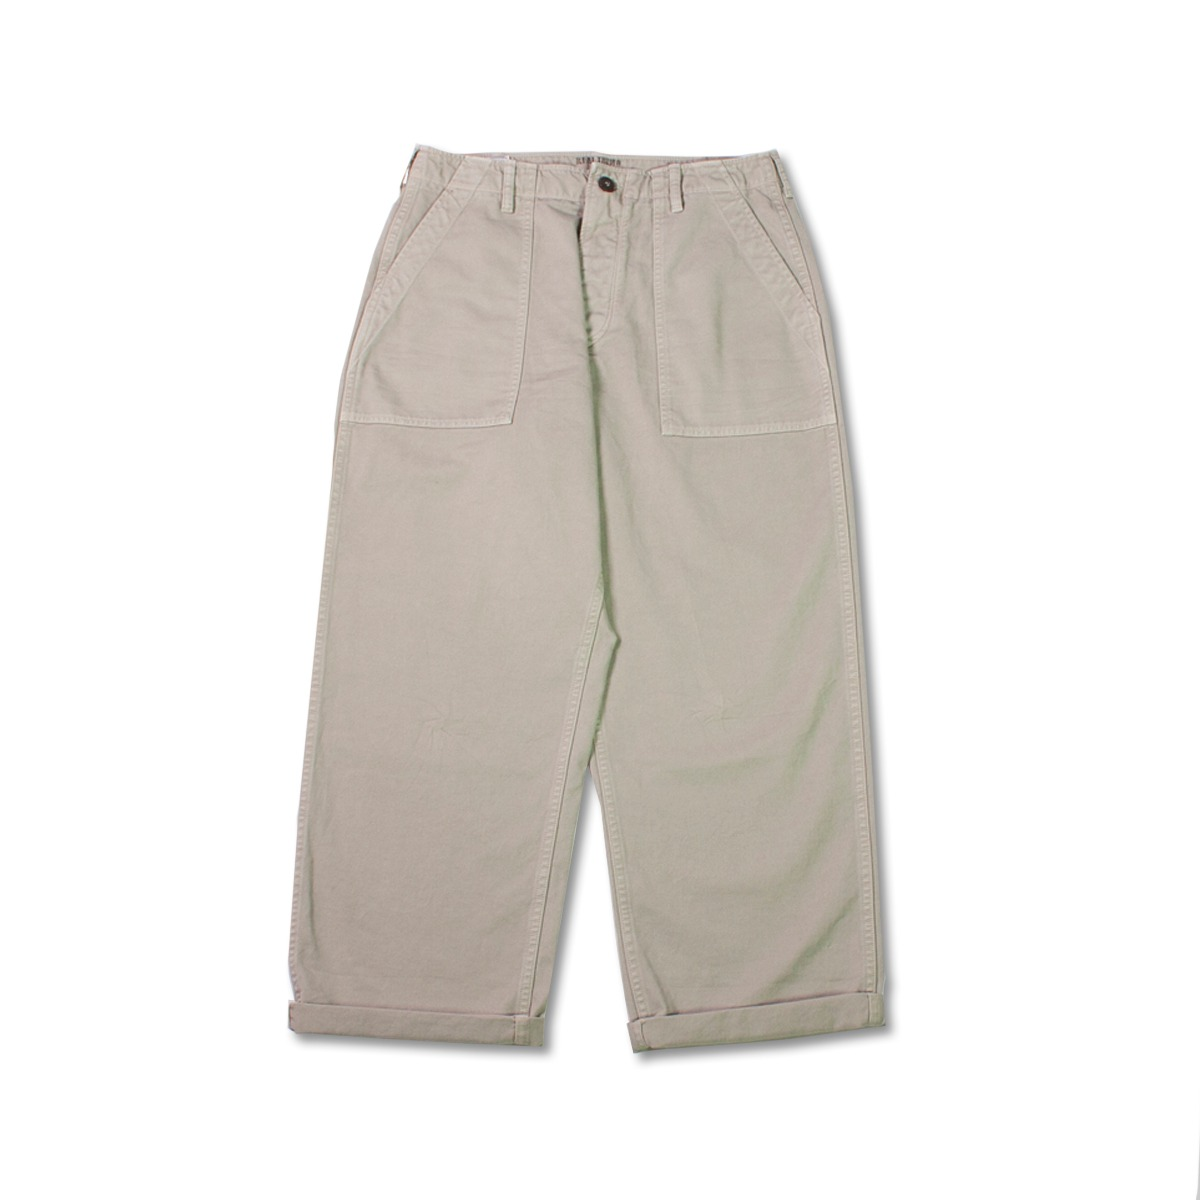 [MASON'S] FATIGUE PANTS 'BEIGE'